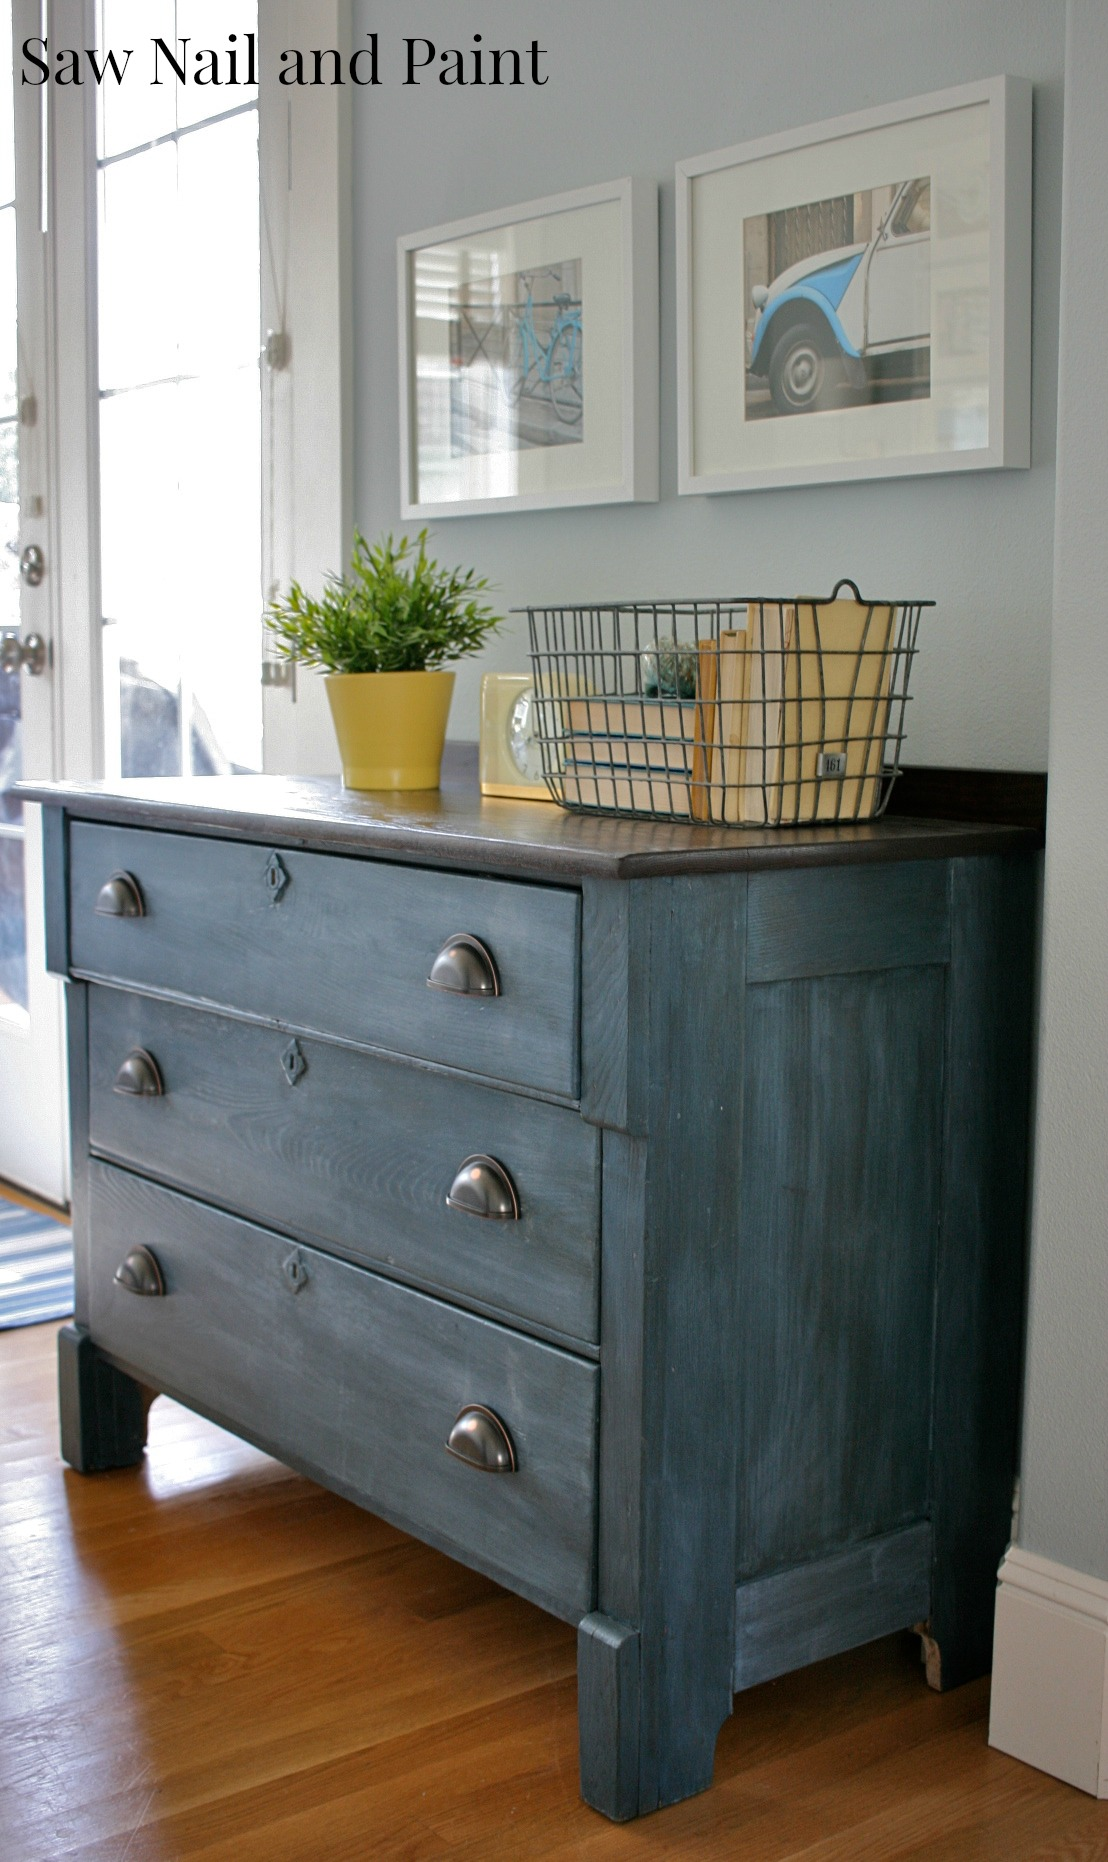 Soldier blue chest a roadside rescue saw nail and paint for Furniture paint colors